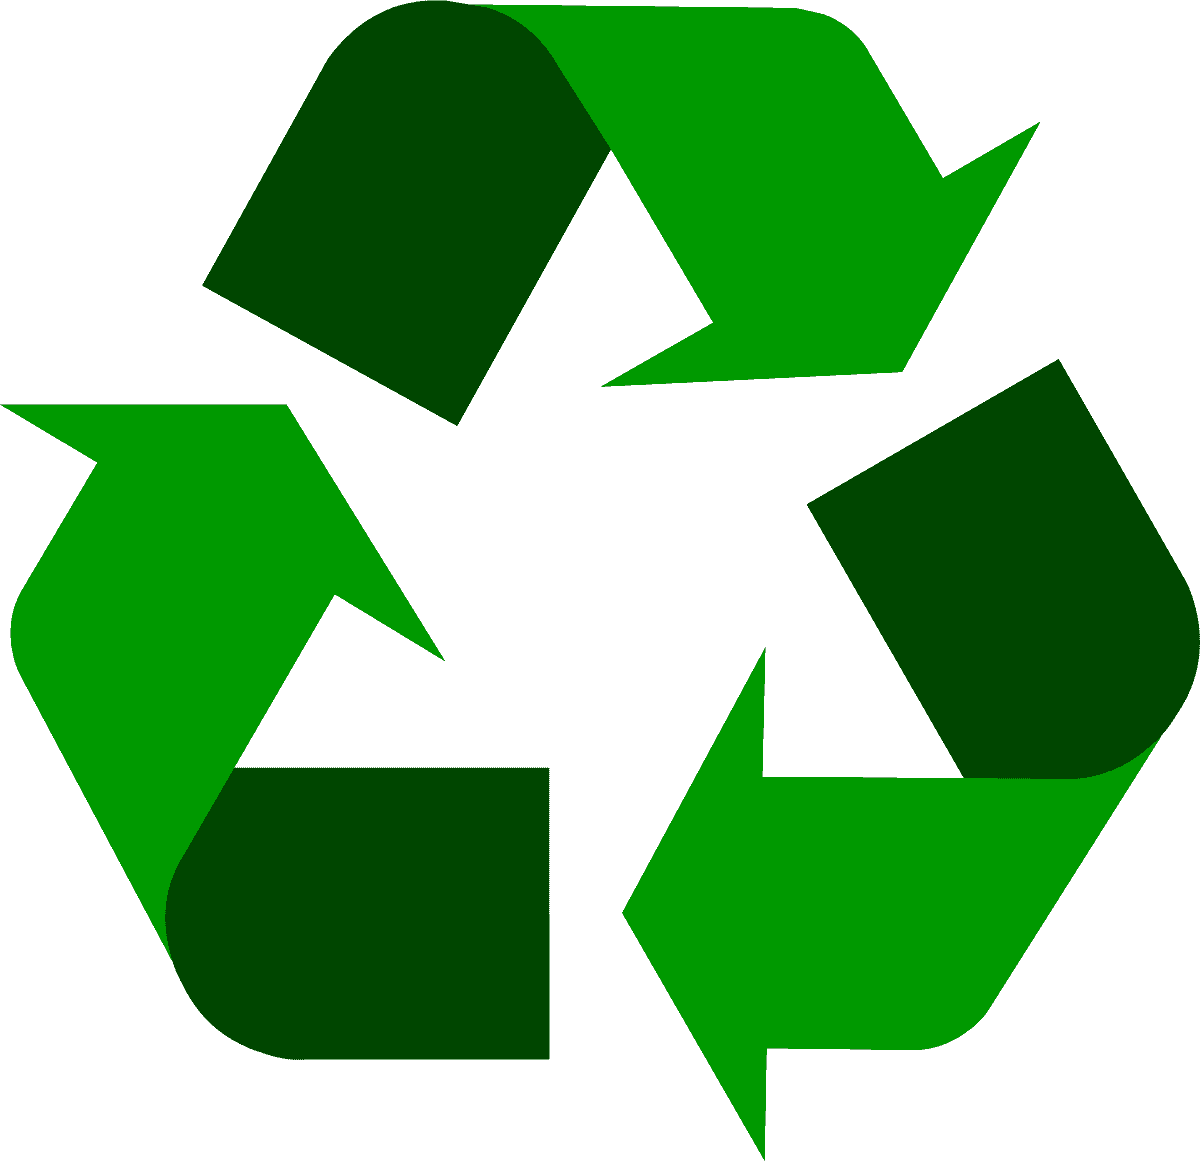 http://www.recycling.com/wp-content/uploads/2016/06/recycling-symbol-icon-twotone-dark-green.png